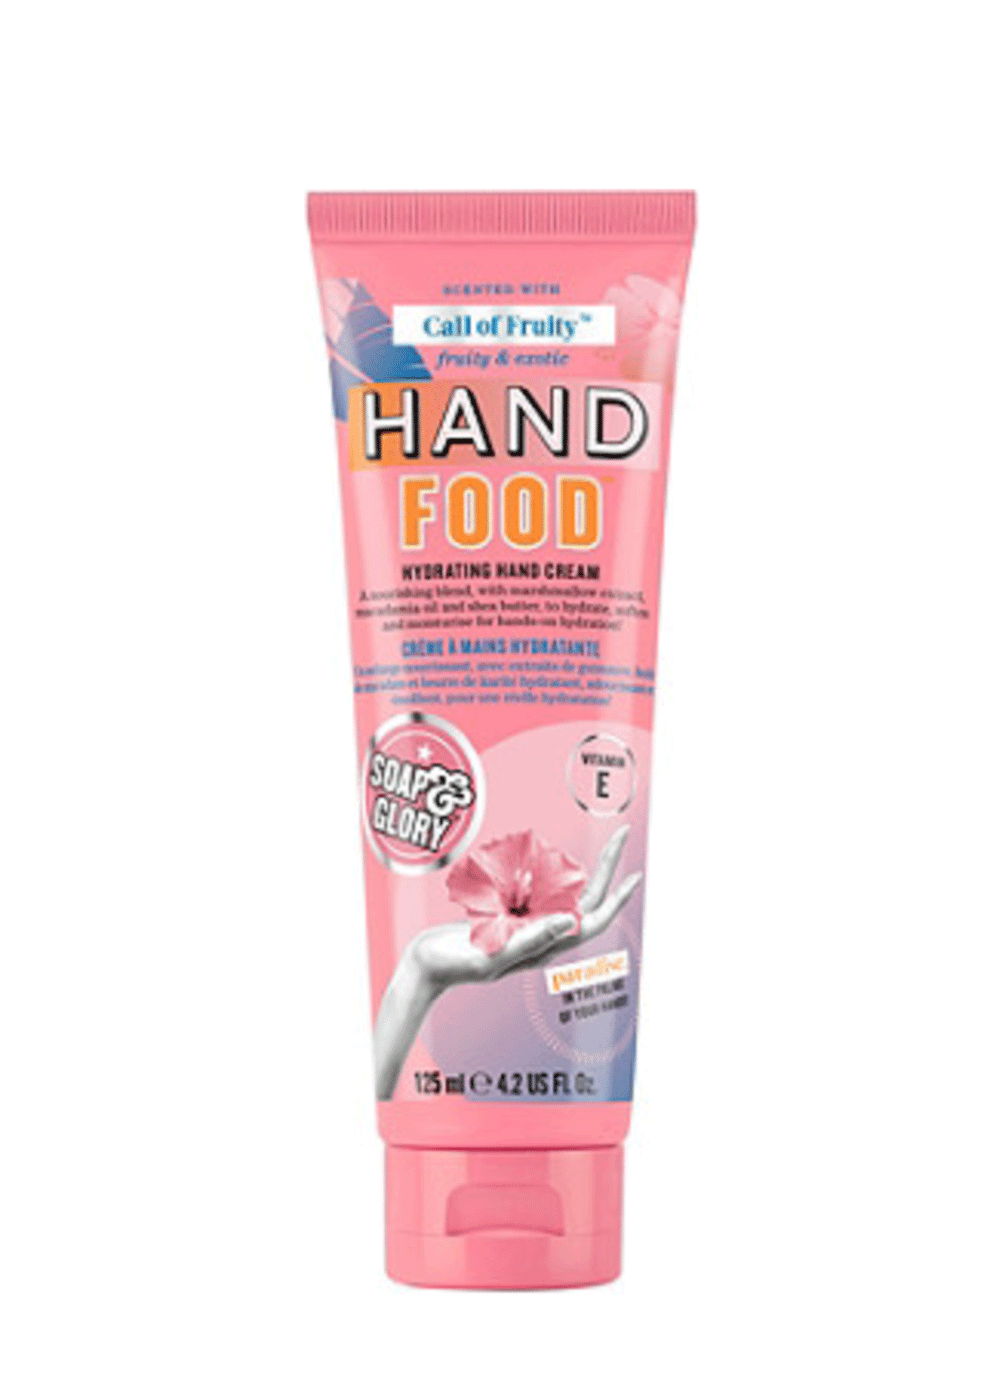 8 Best Hand Creams for Dry, Cracked Skin - Top Hand Lotions for 2019